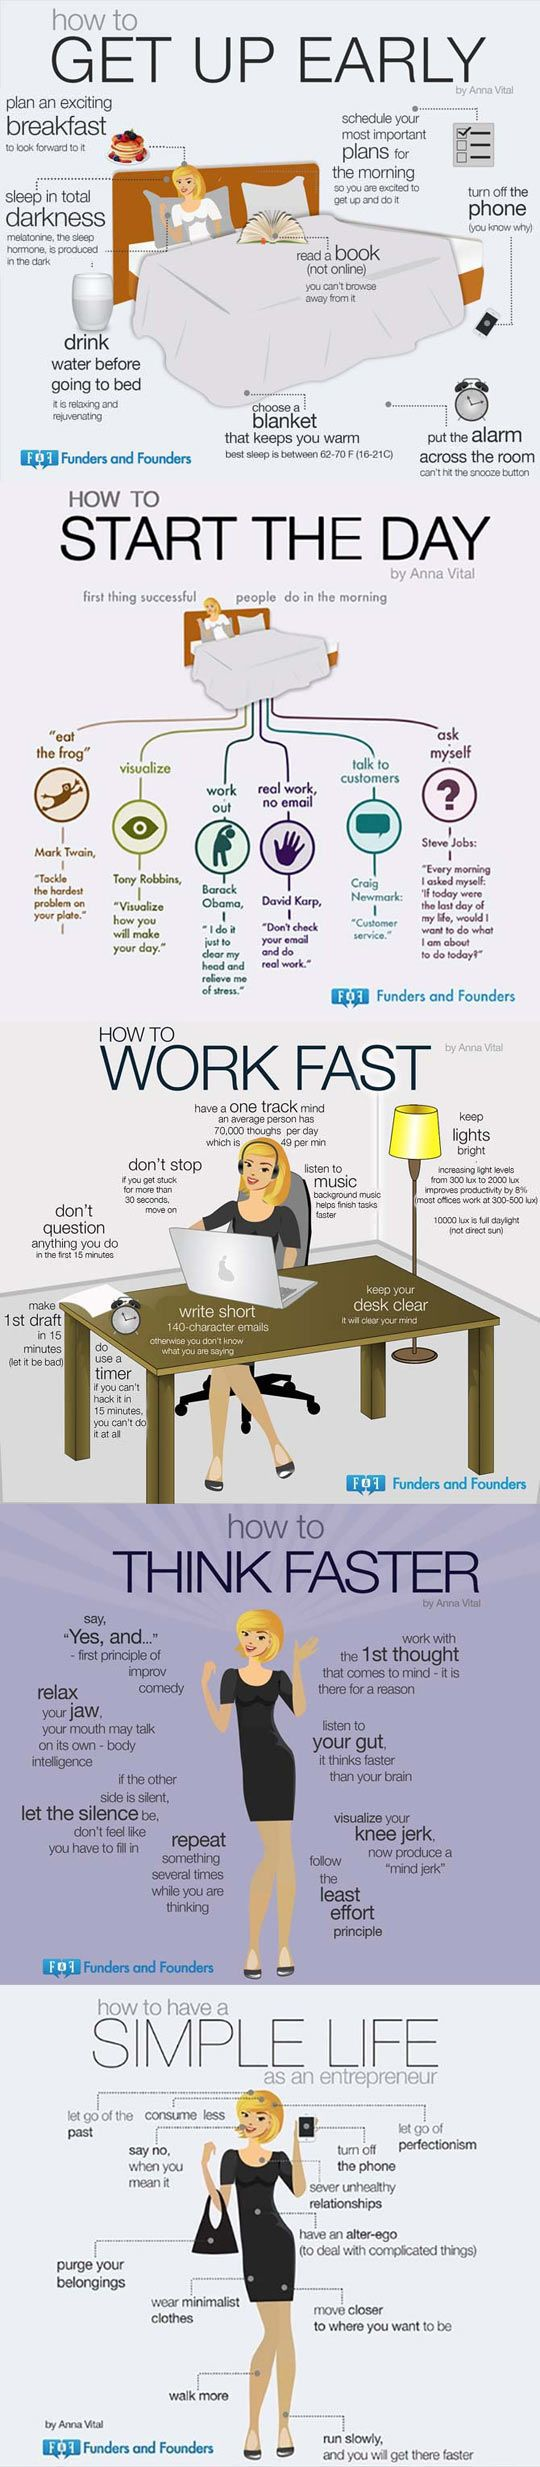 infographic_effective day